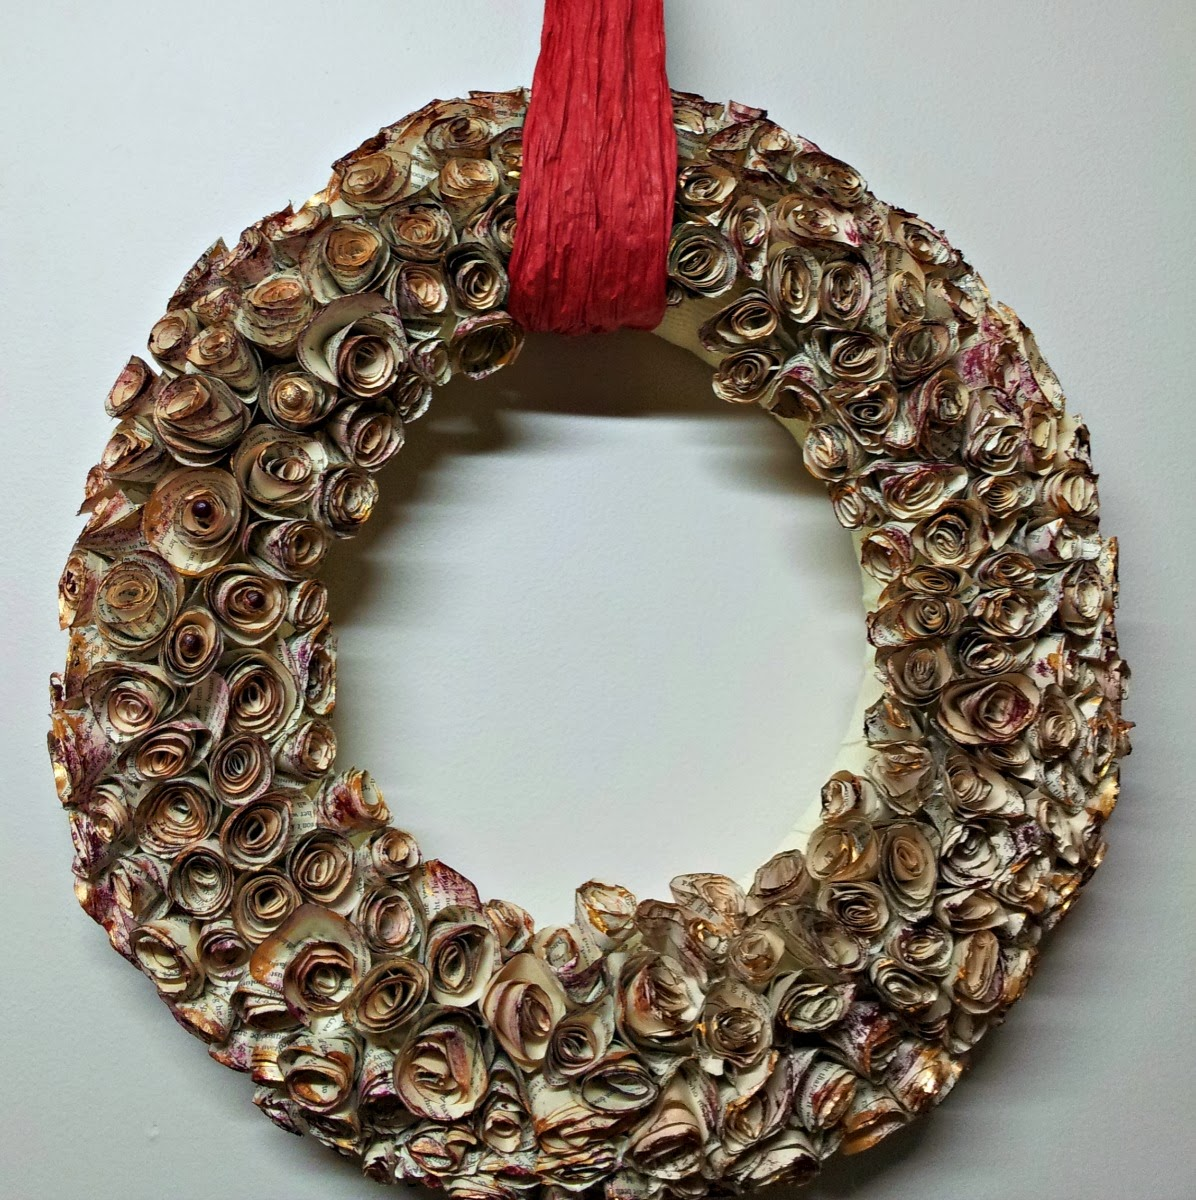 Spiral Paper Rose Wreath